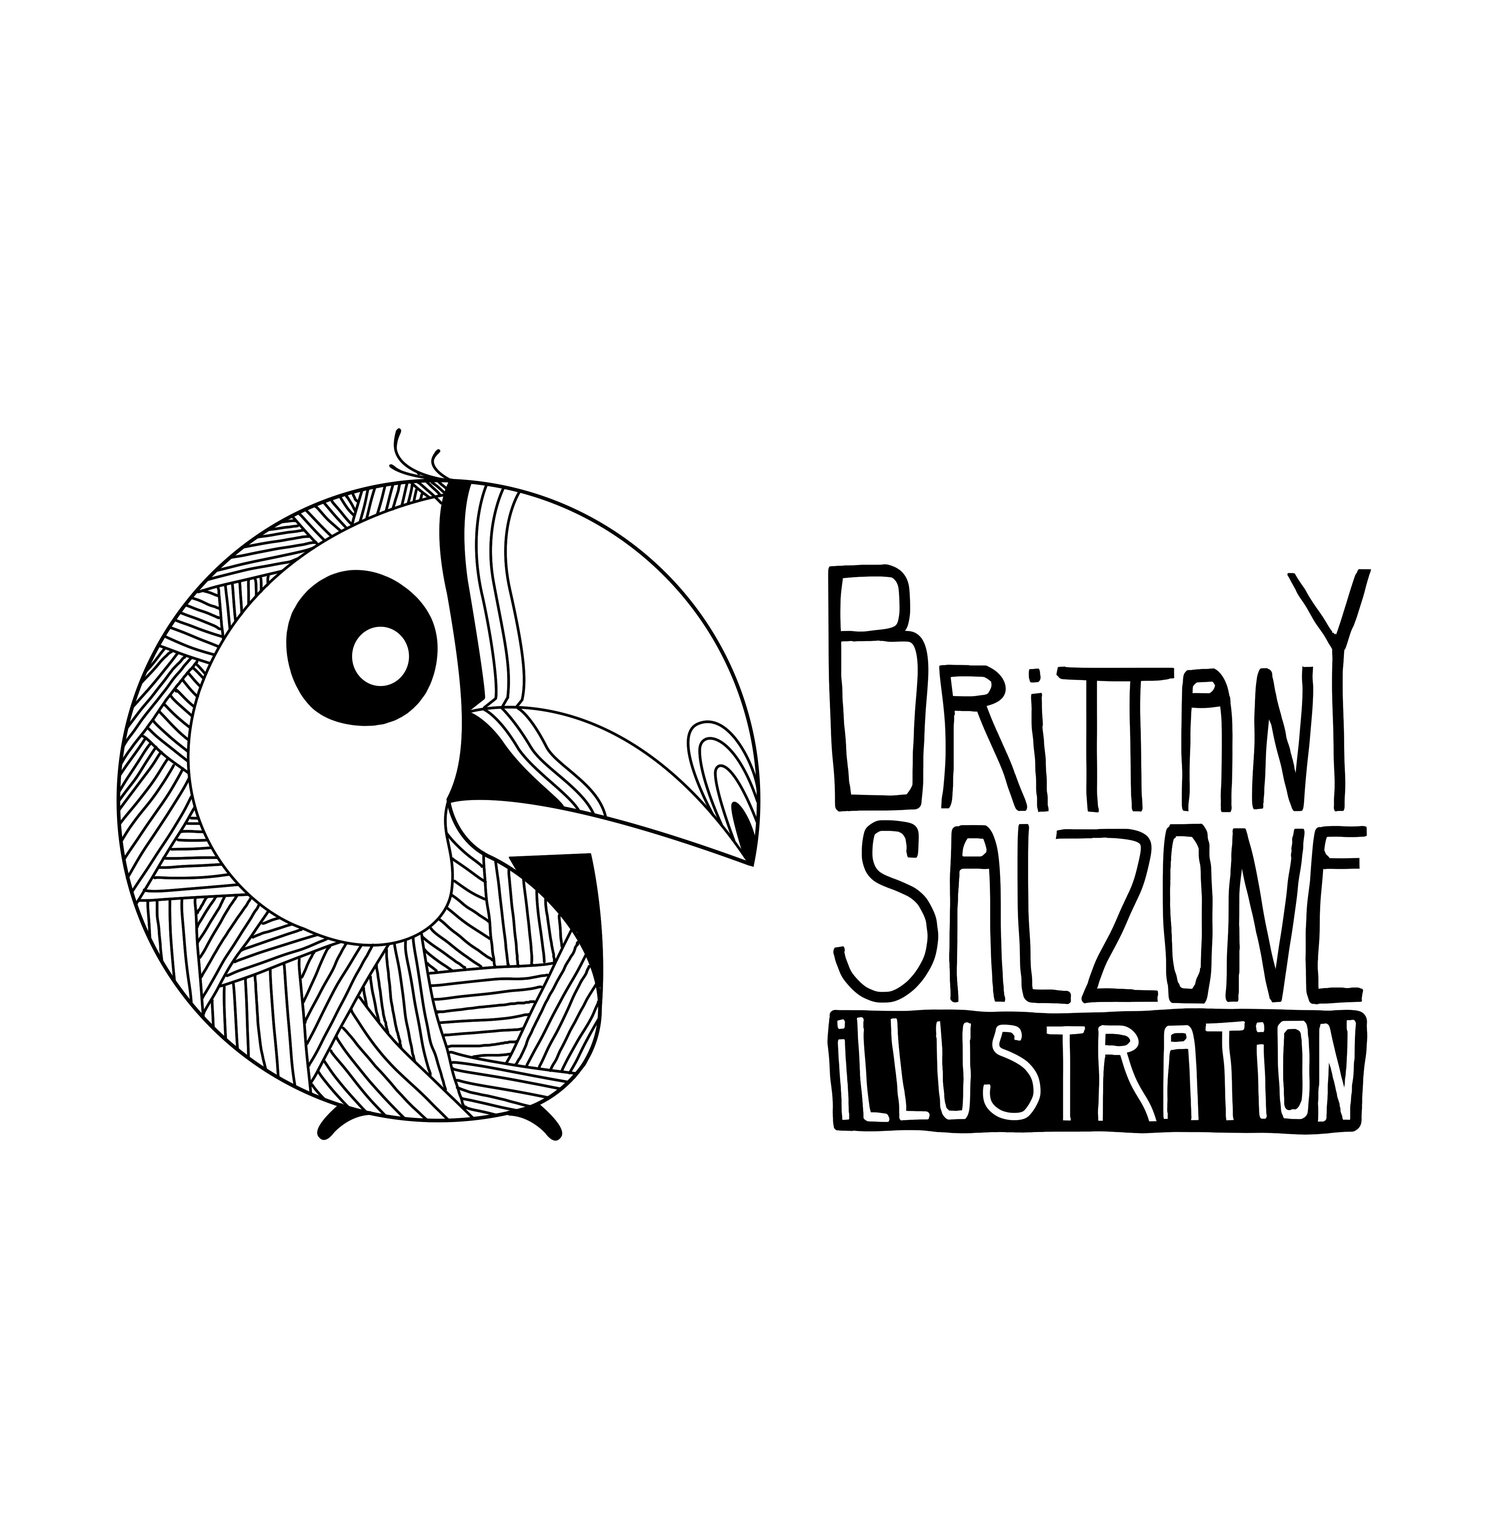 Brittany Salzone Illustration